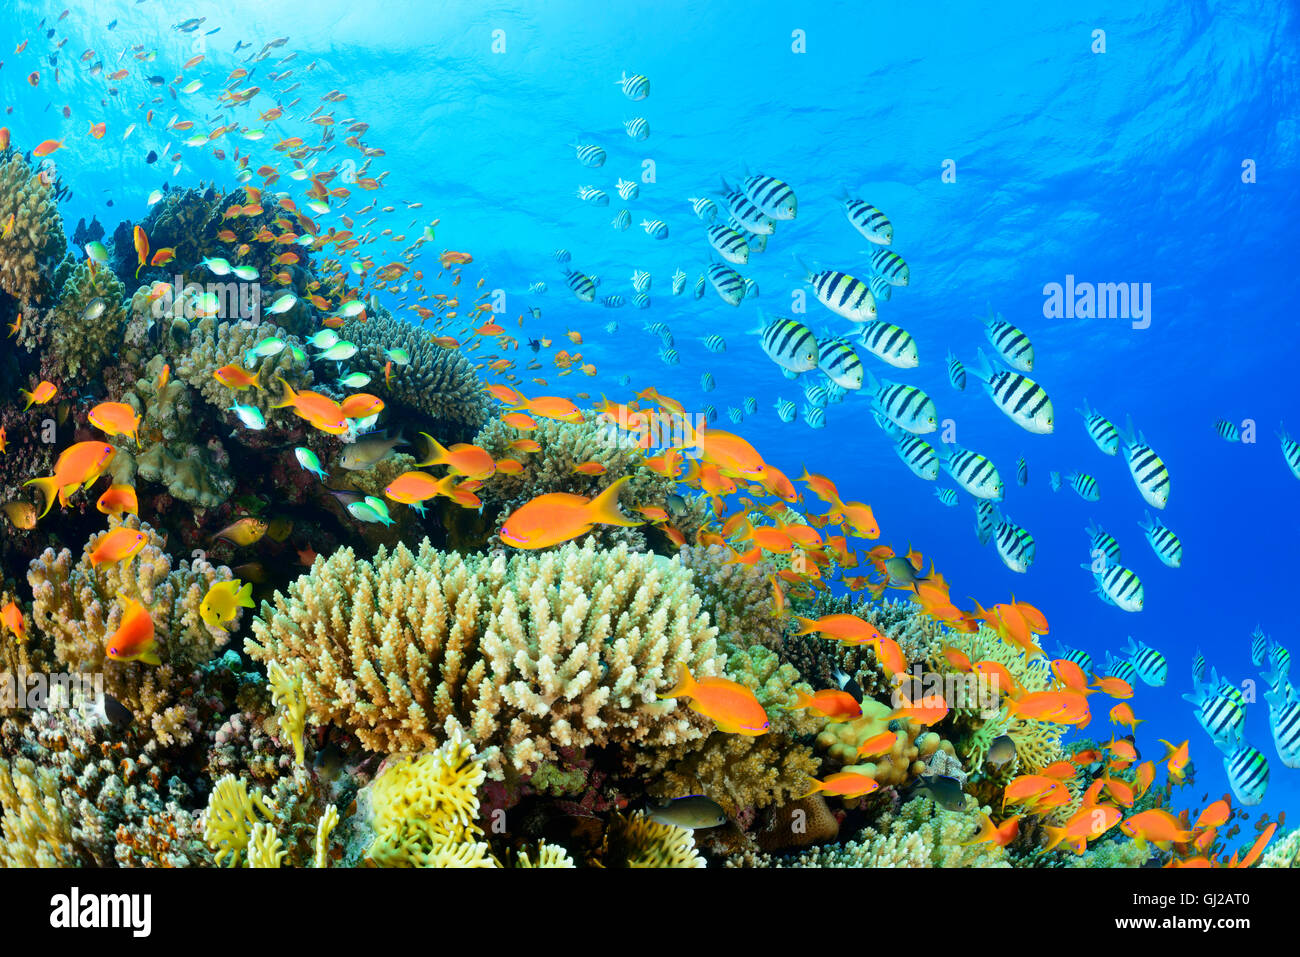 Coralreef with Sea Goldie or Red Coral Perch and Indo Pacific sergeant, Safaga, Red Sea, Egypt Stock Photo